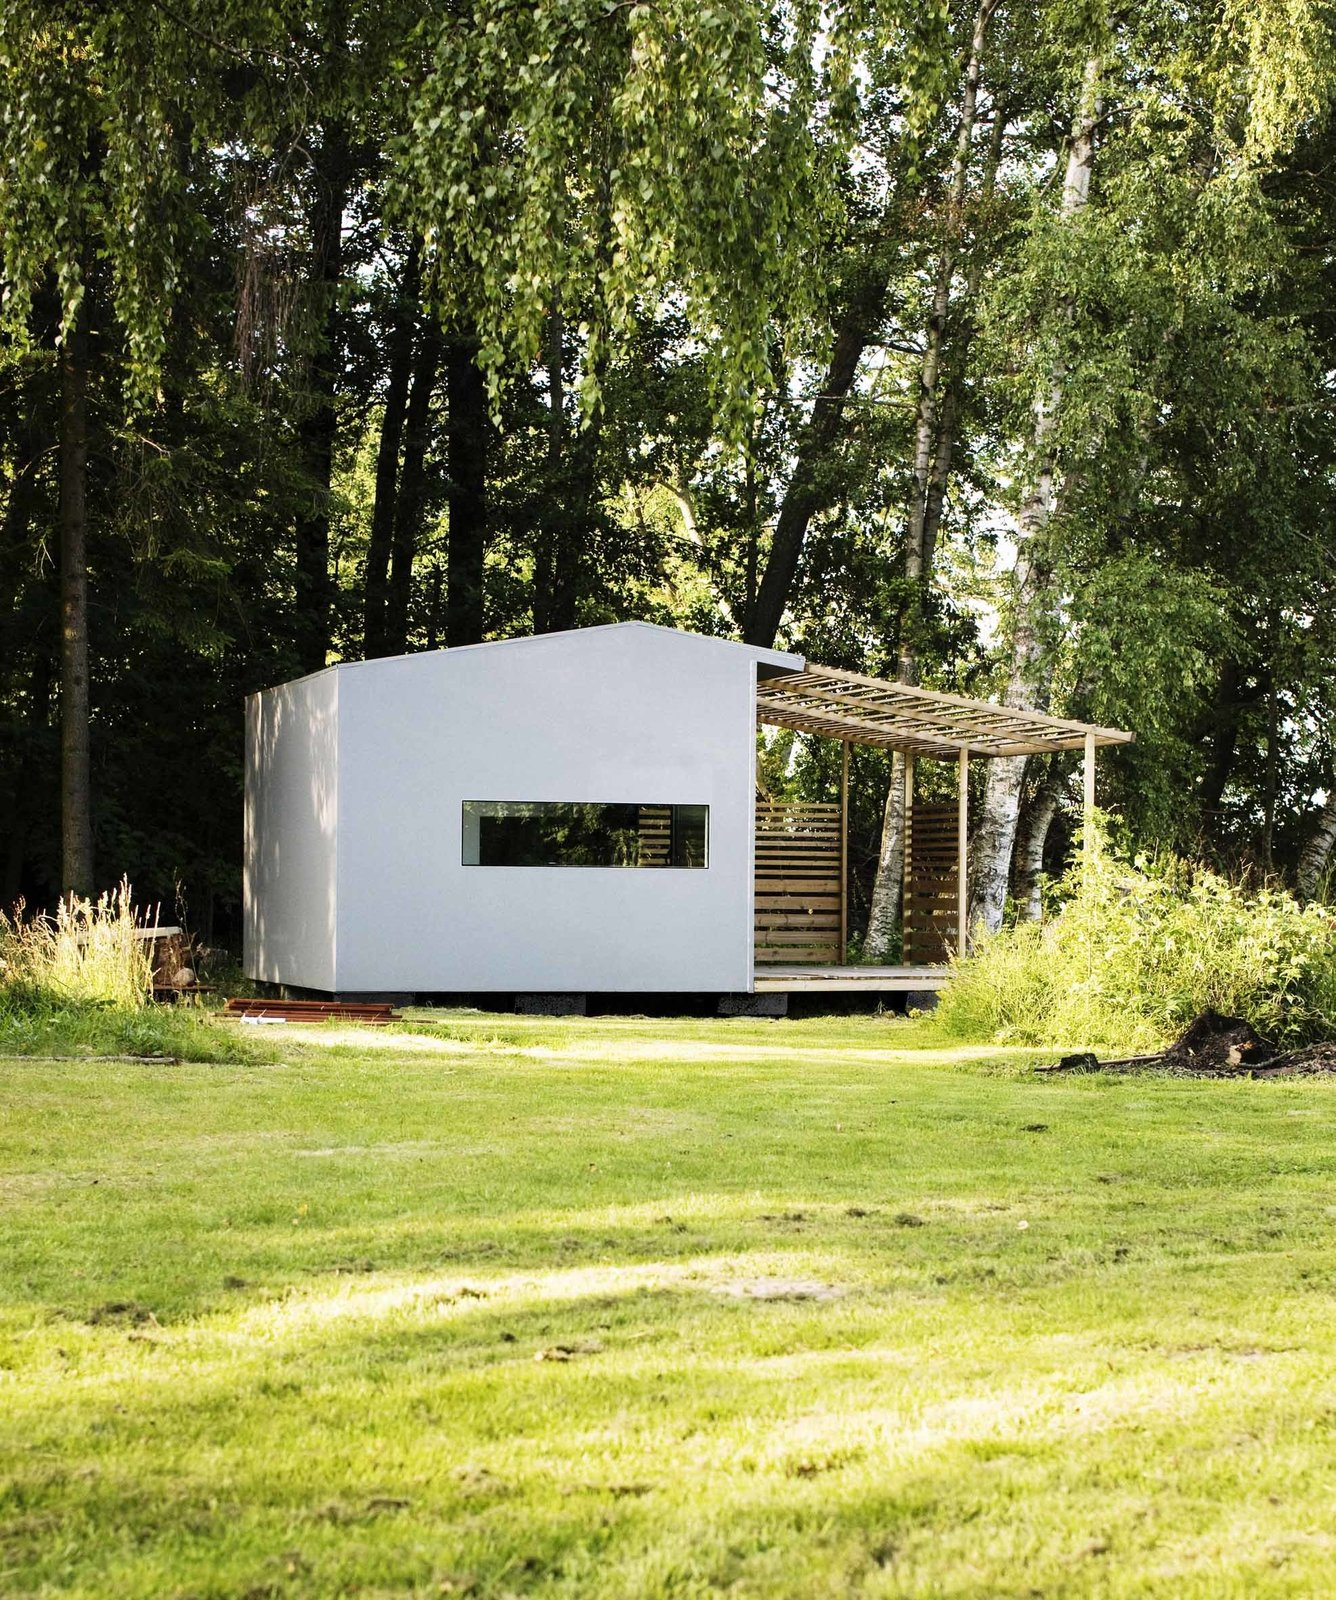 The homes are painted wood, and include a shaded deck space, plus full insulation and electricity, for a price of about $29,000. Tagged: Exterior, House, Wood Siding Material, Gable RoofLine, and Prefab Building Type.  Tiny Homes  by Erika Heet from Tiny Prefabricated House Can Be Built in Two Days